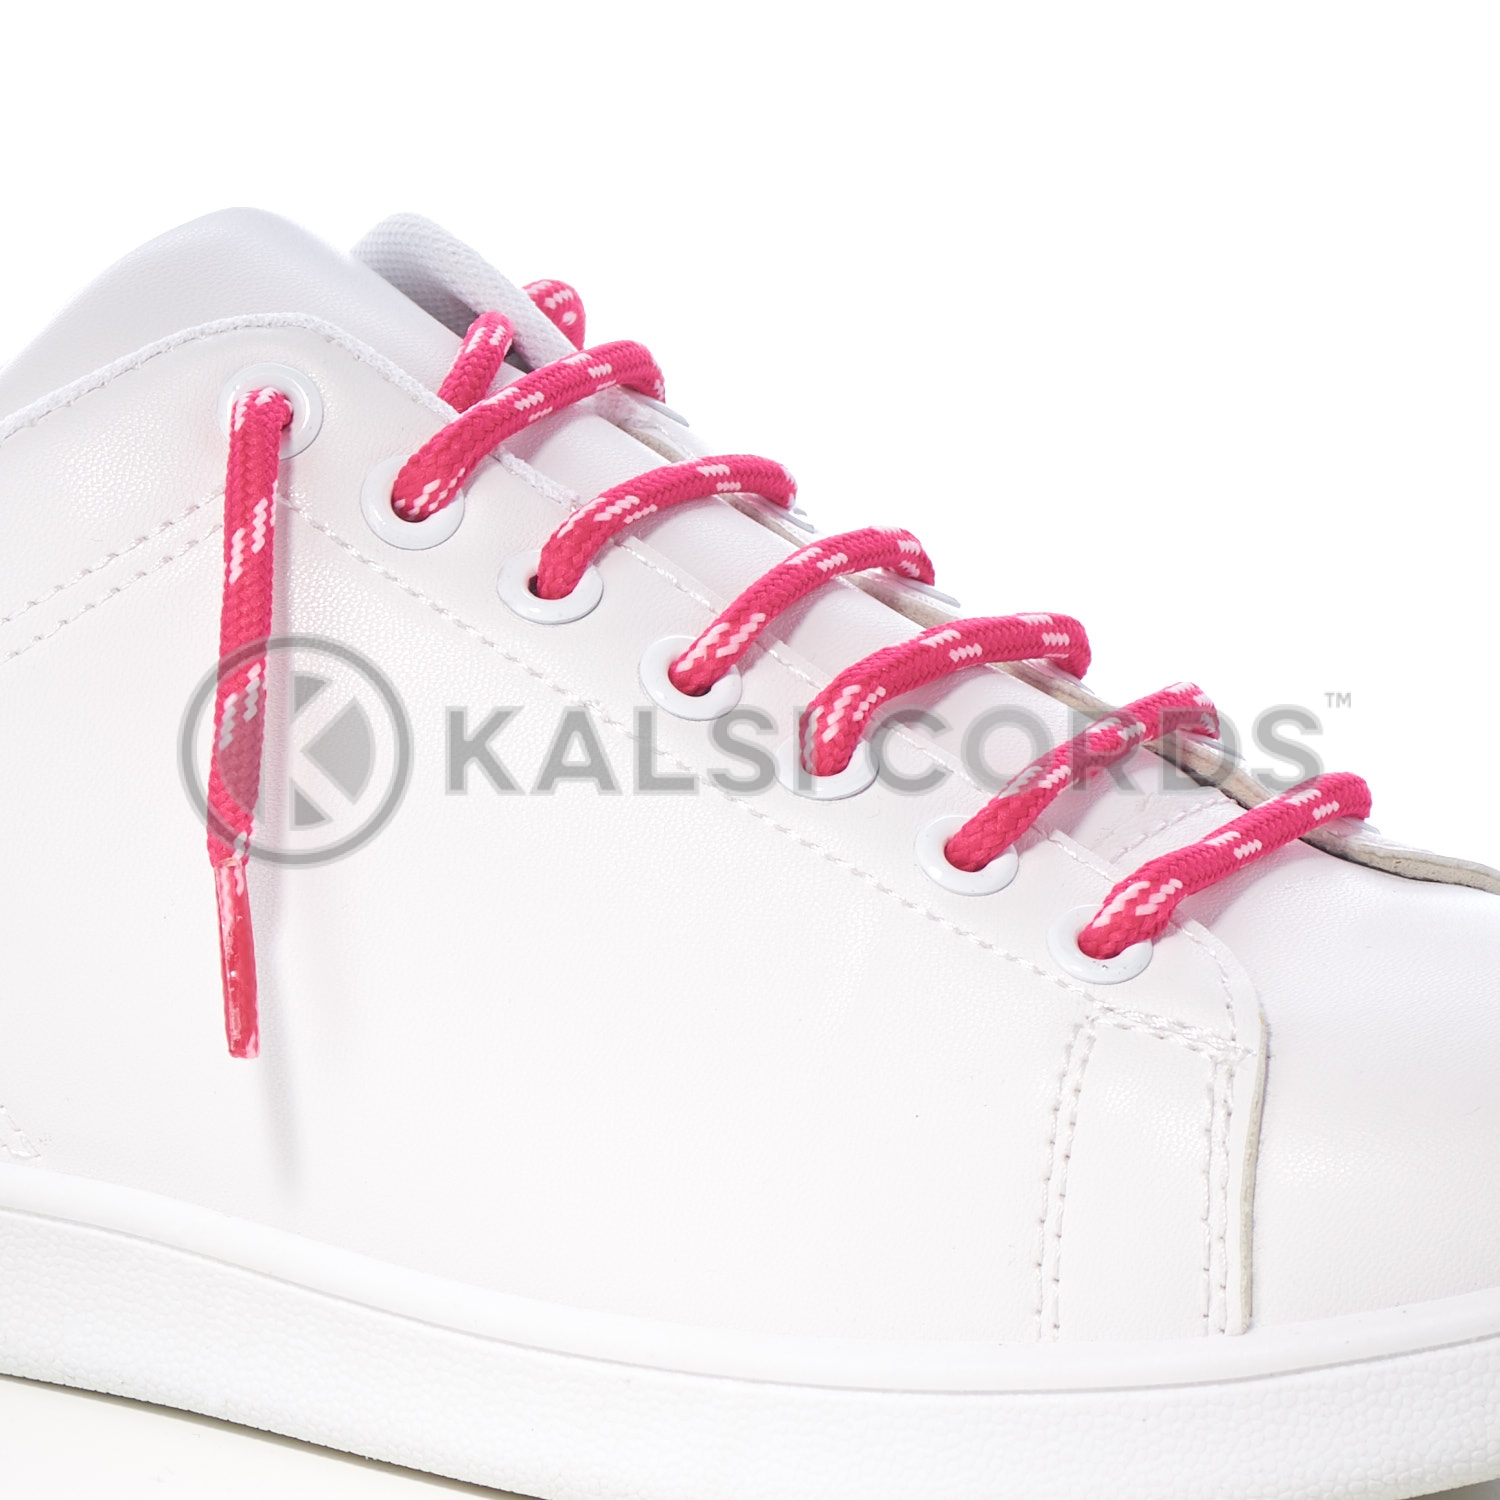 T621 5mm Round Cord Shoe Lace Cerise Baby Pink 4 Fleck Kids Trainers Adults Hiking Walking Boots Kalsi Cords